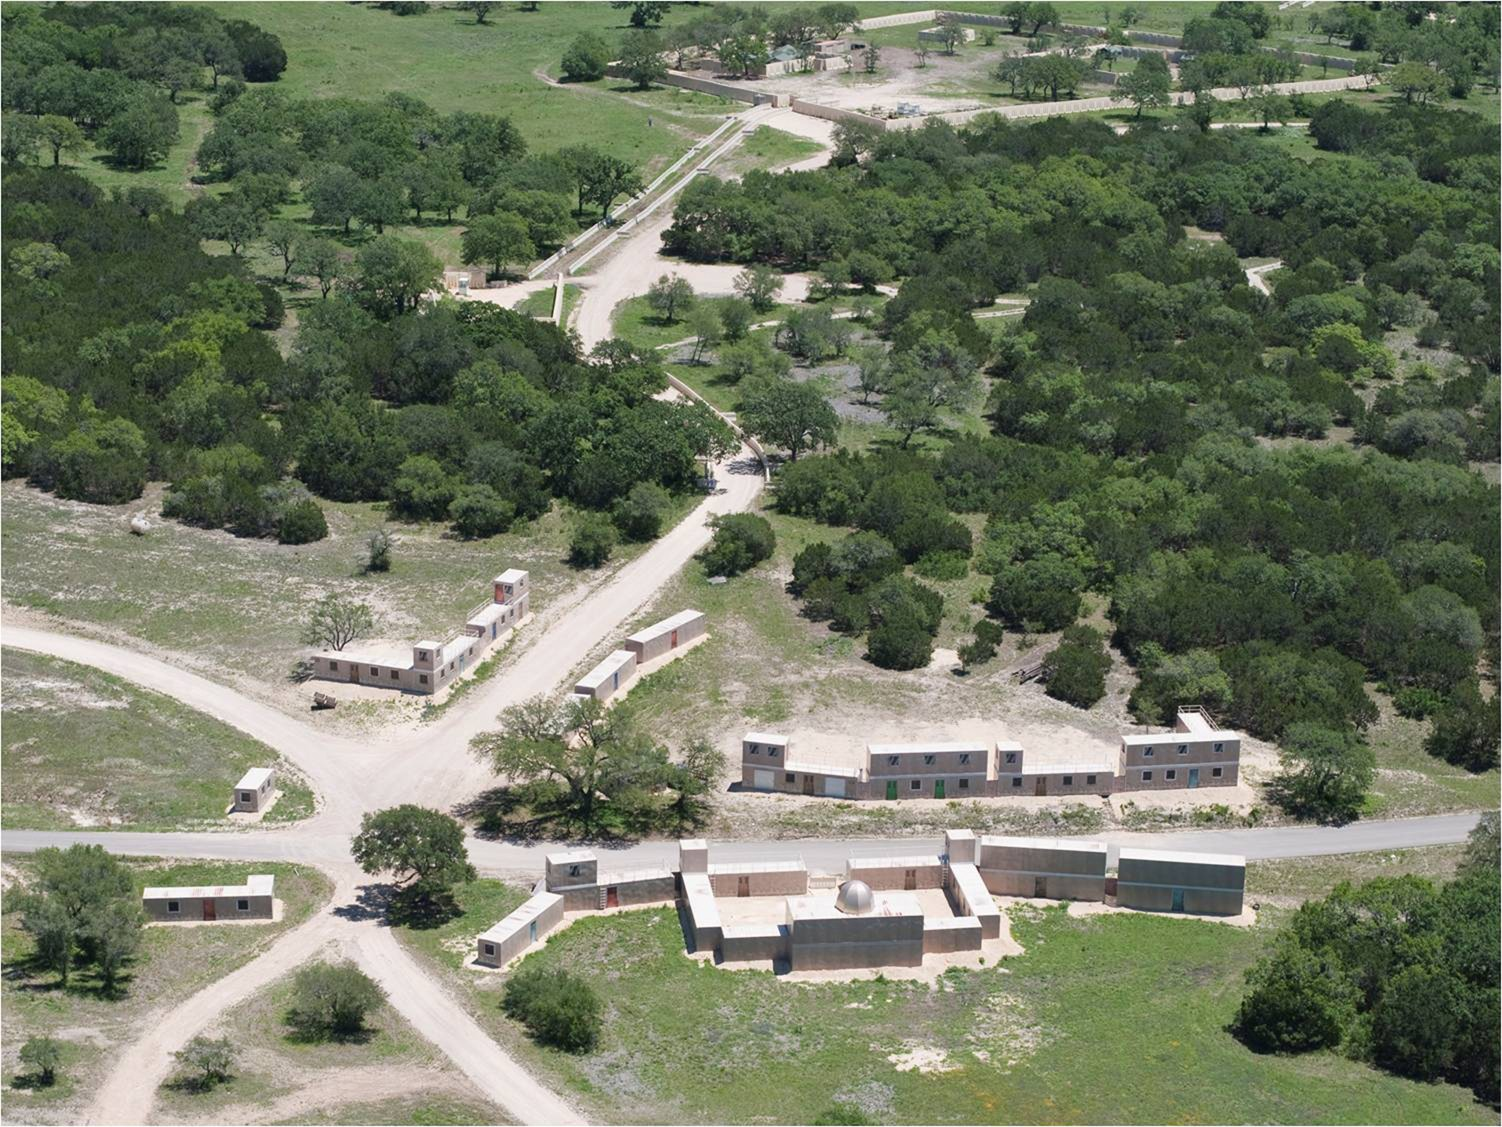 US Army Photo Showing Joint Base San Antonio Camp Bullis